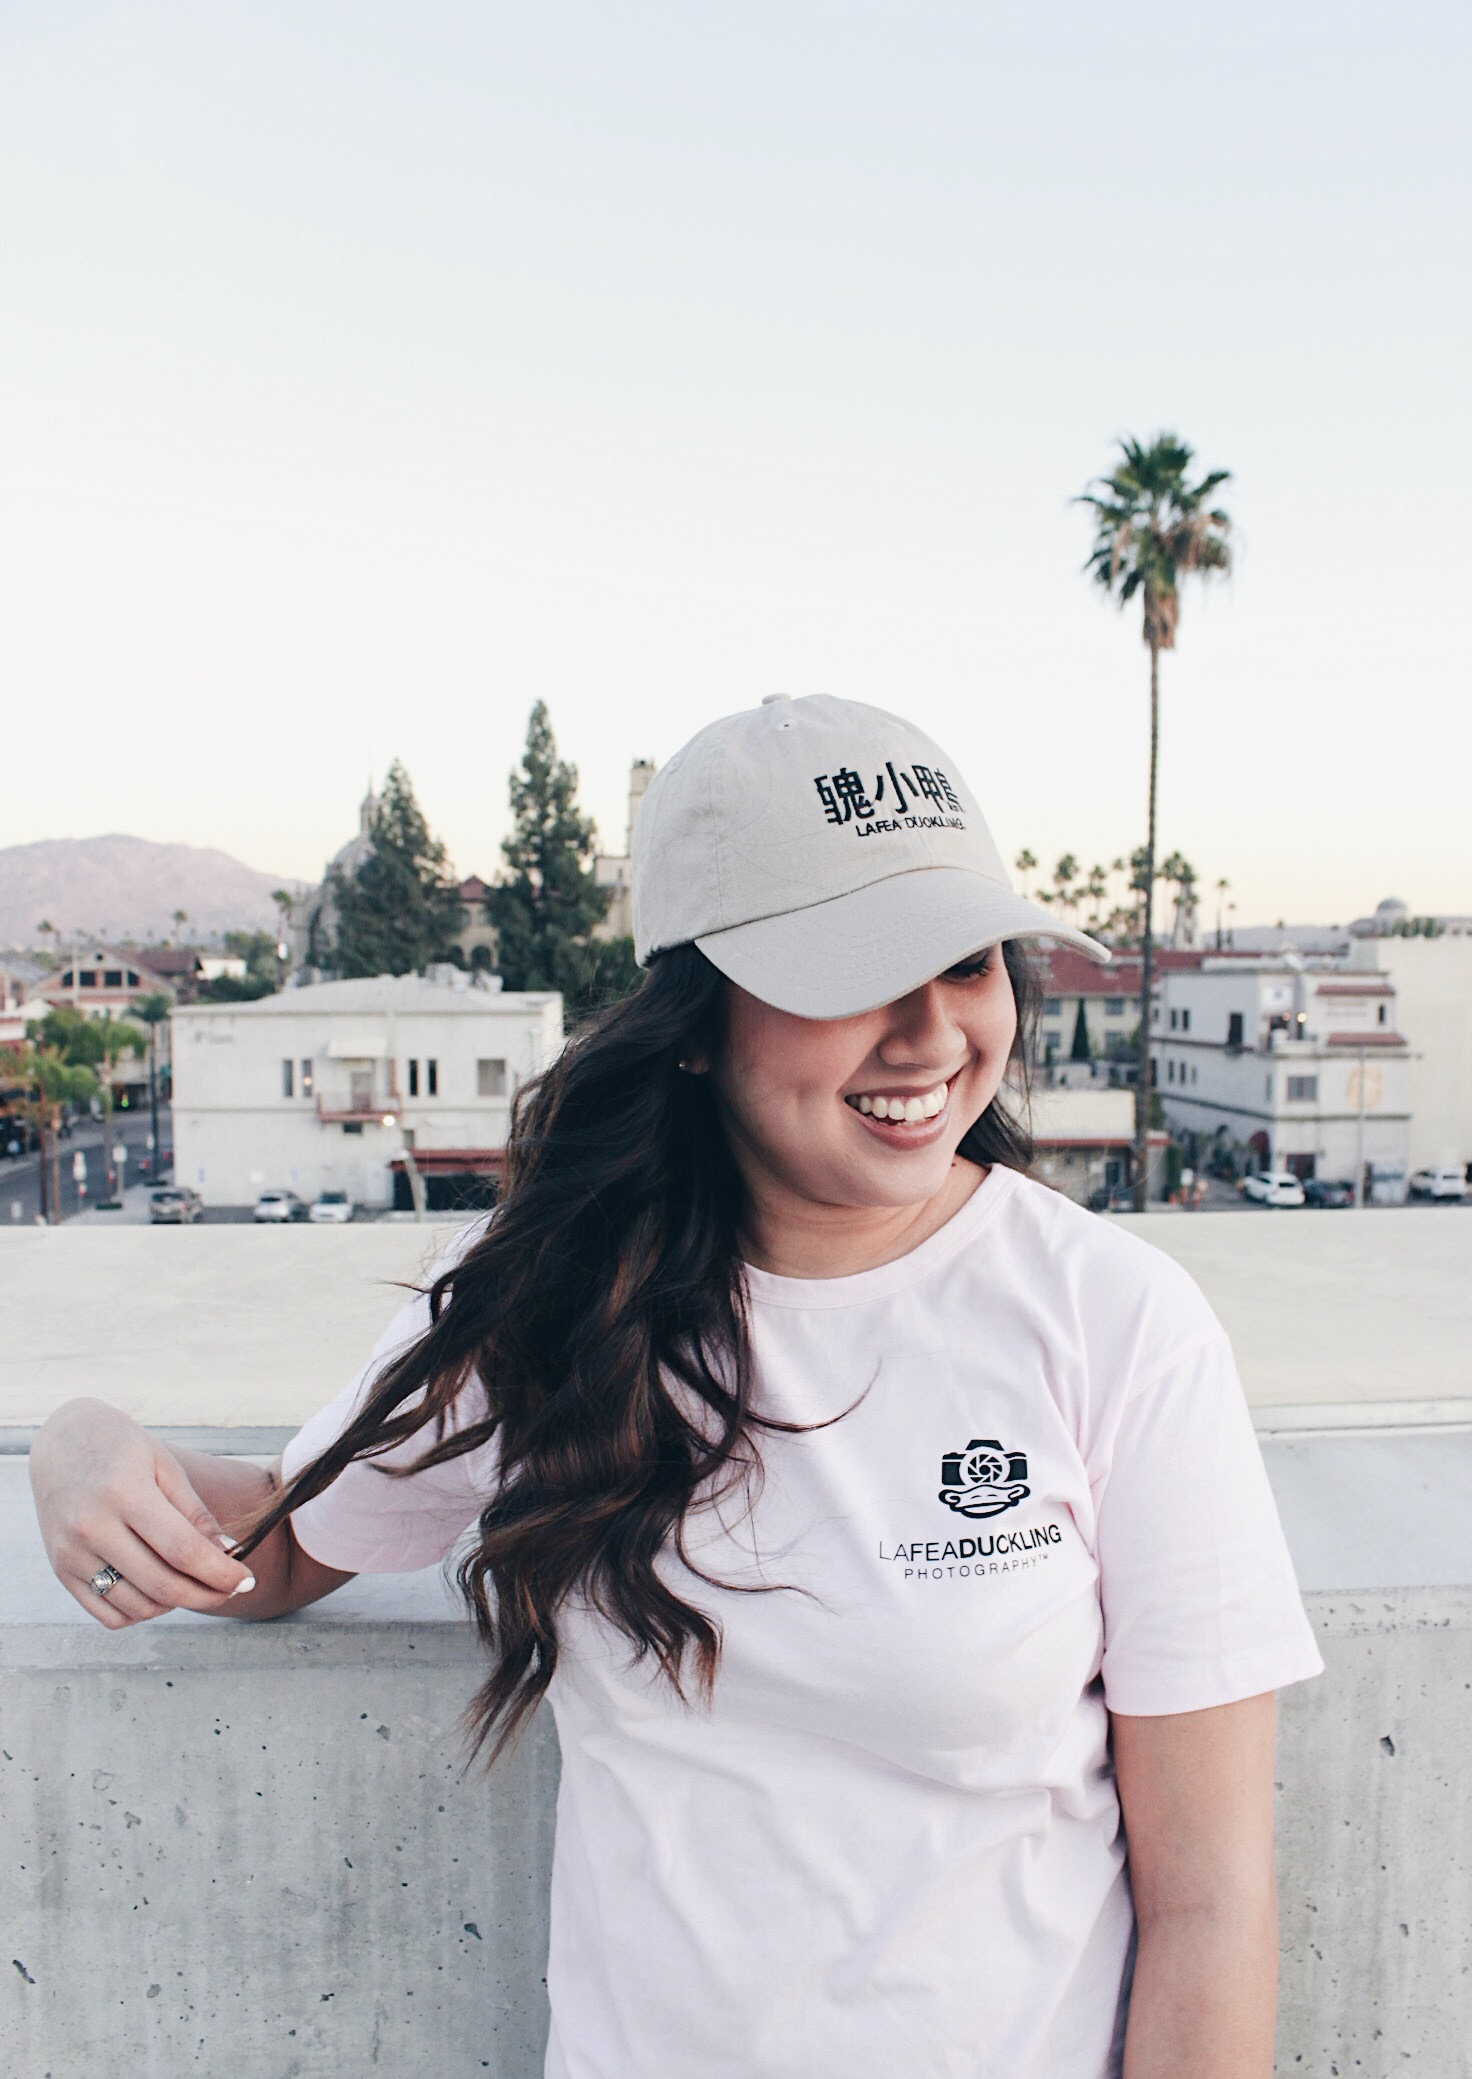 Model wearing grey Lafeaduckling dad hat with pink Lafeaduckling Photography tee